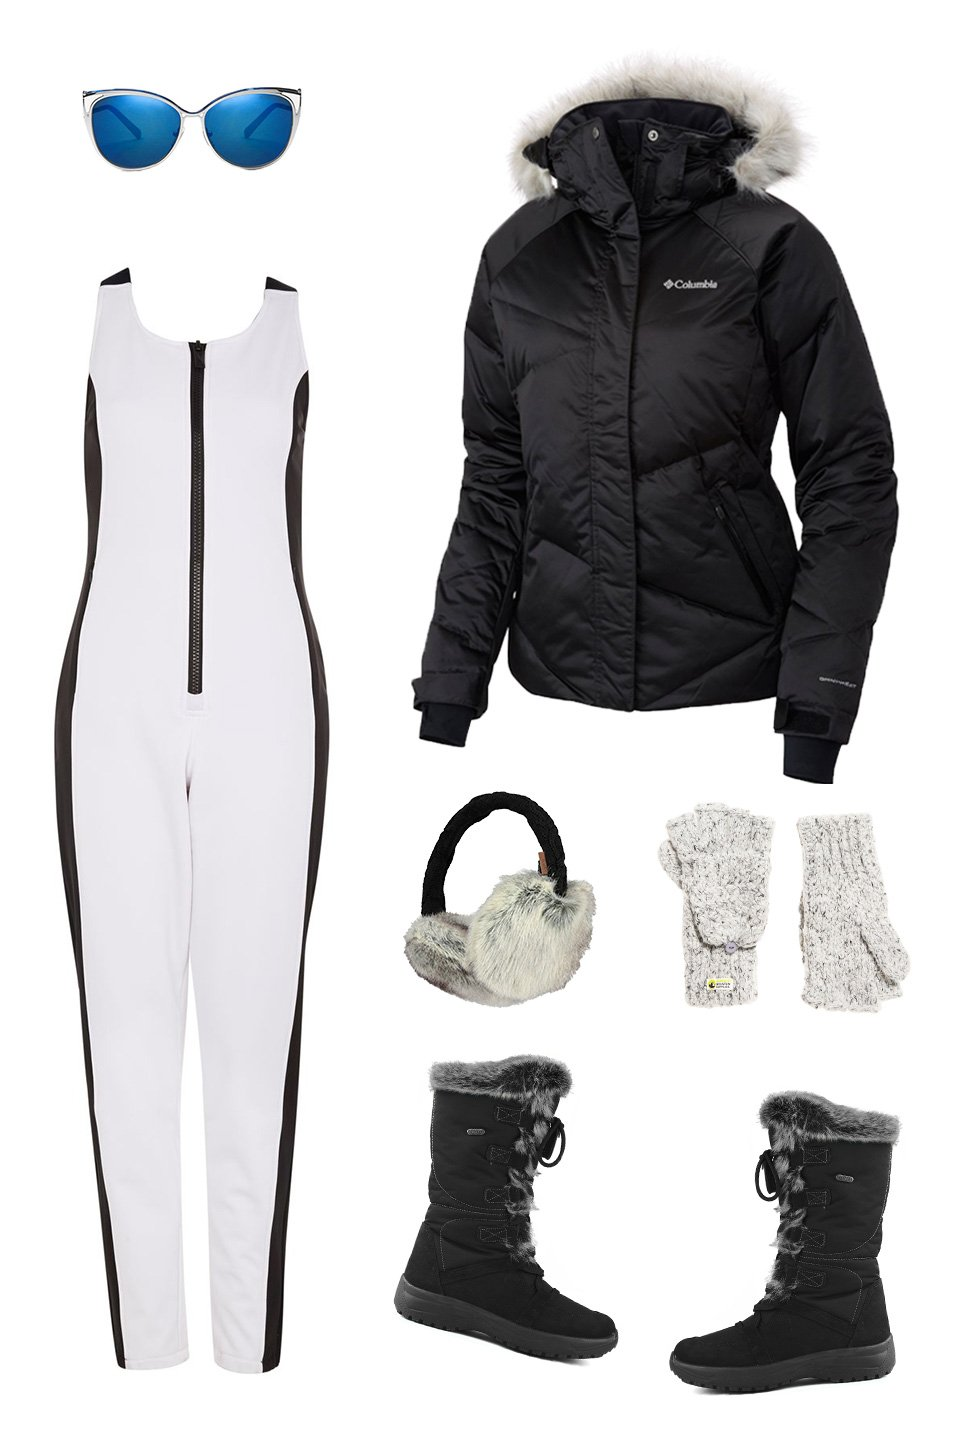 Snow bunnies get prepared for the ski season with these clothes